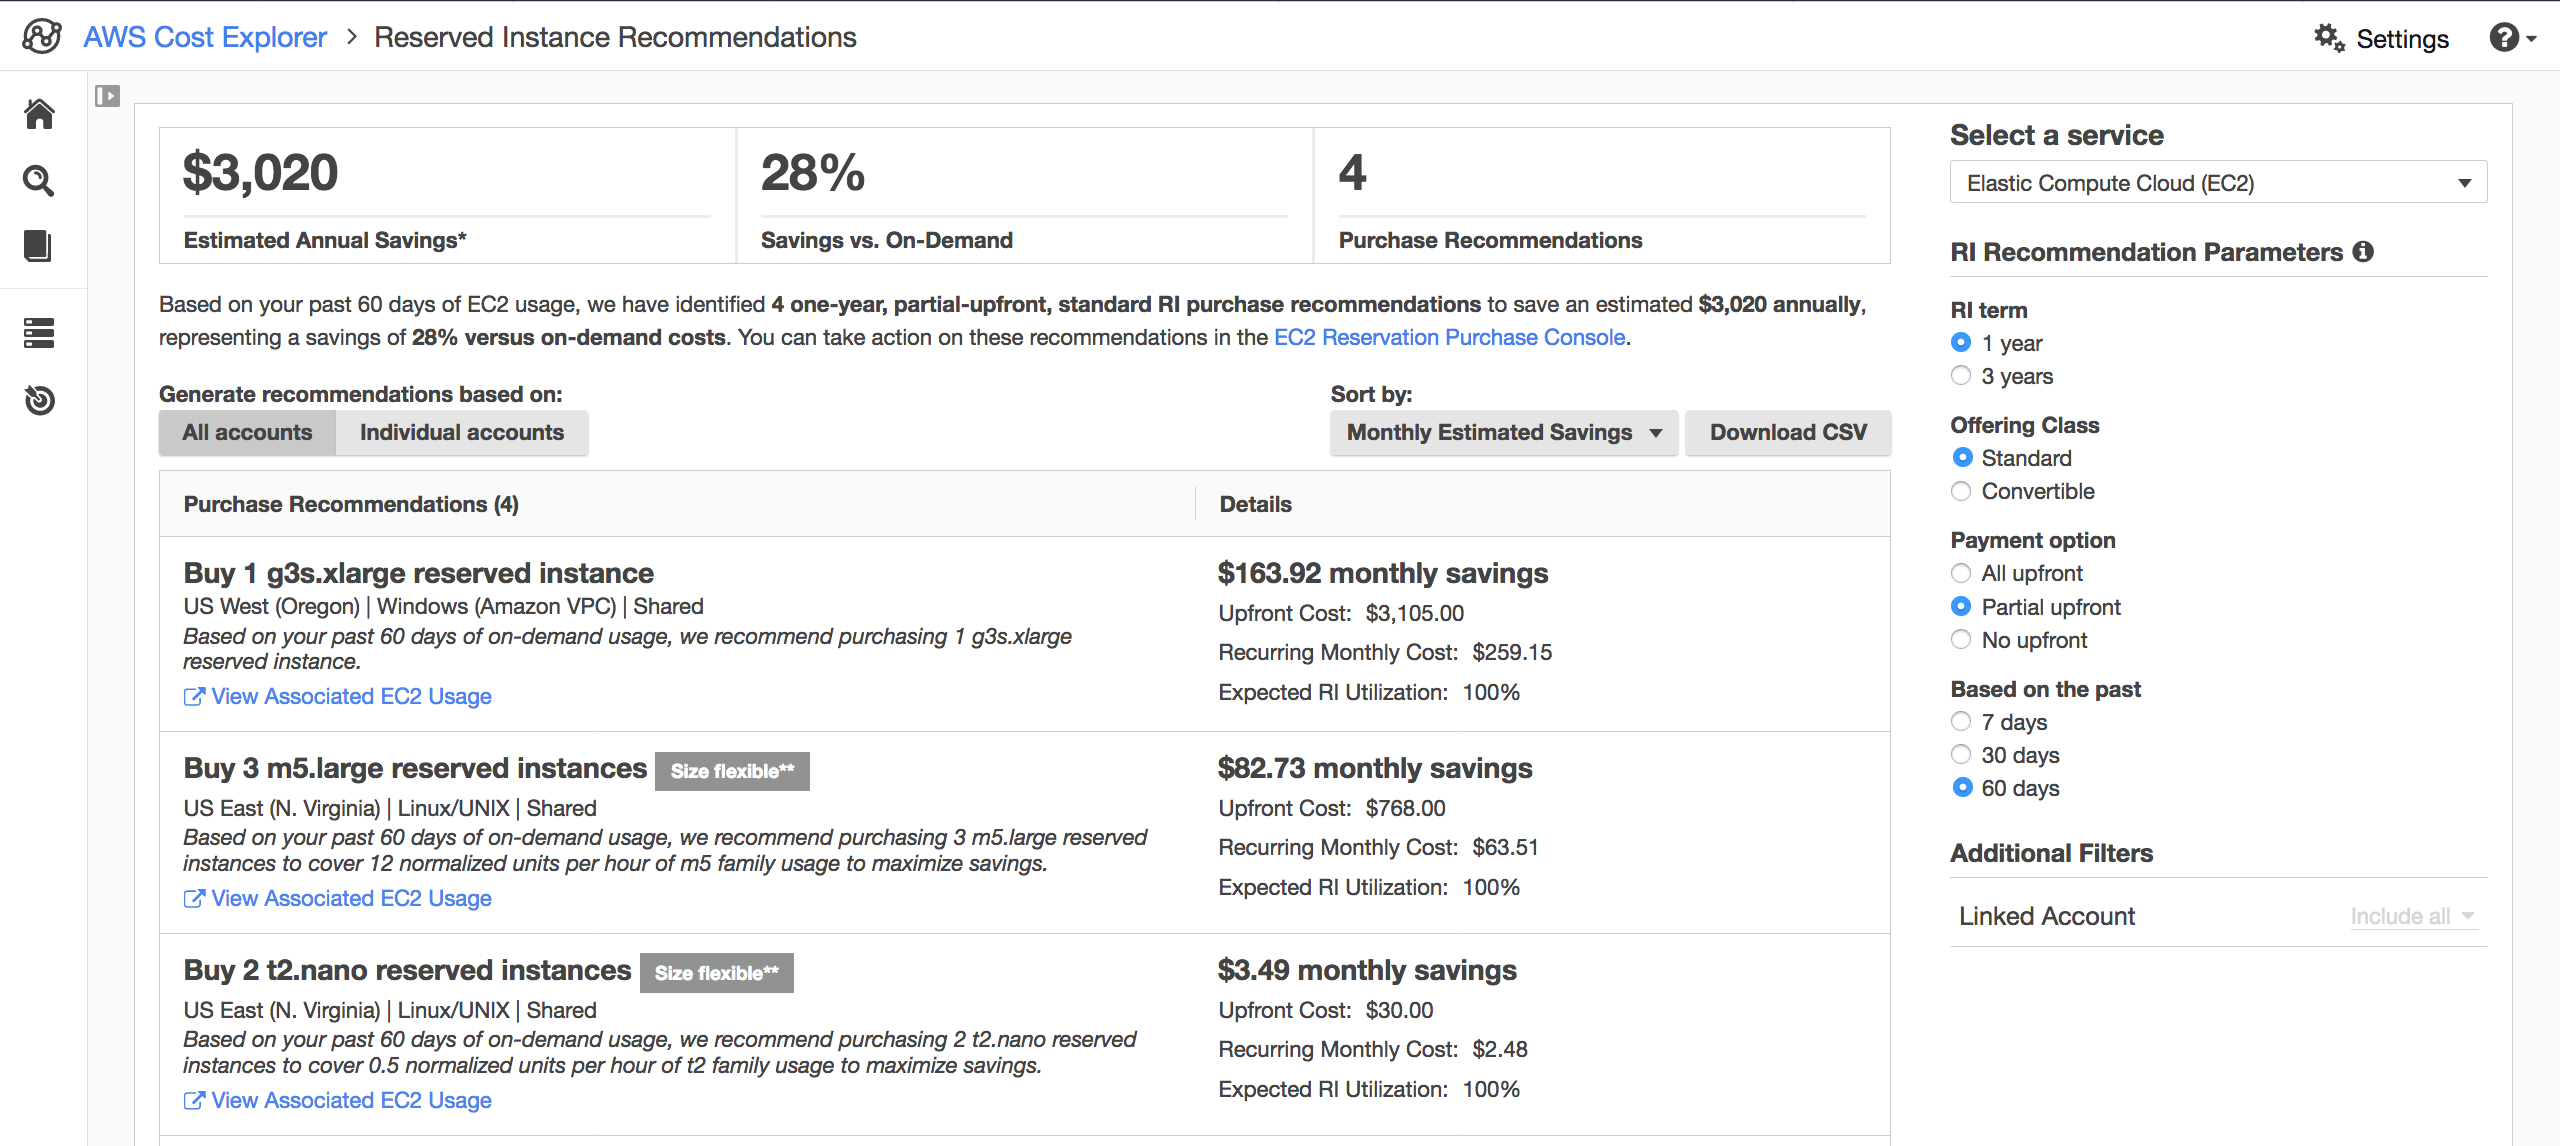 Screenshot of AWS Cost Explorer's Reservation Purchase Recommendations page